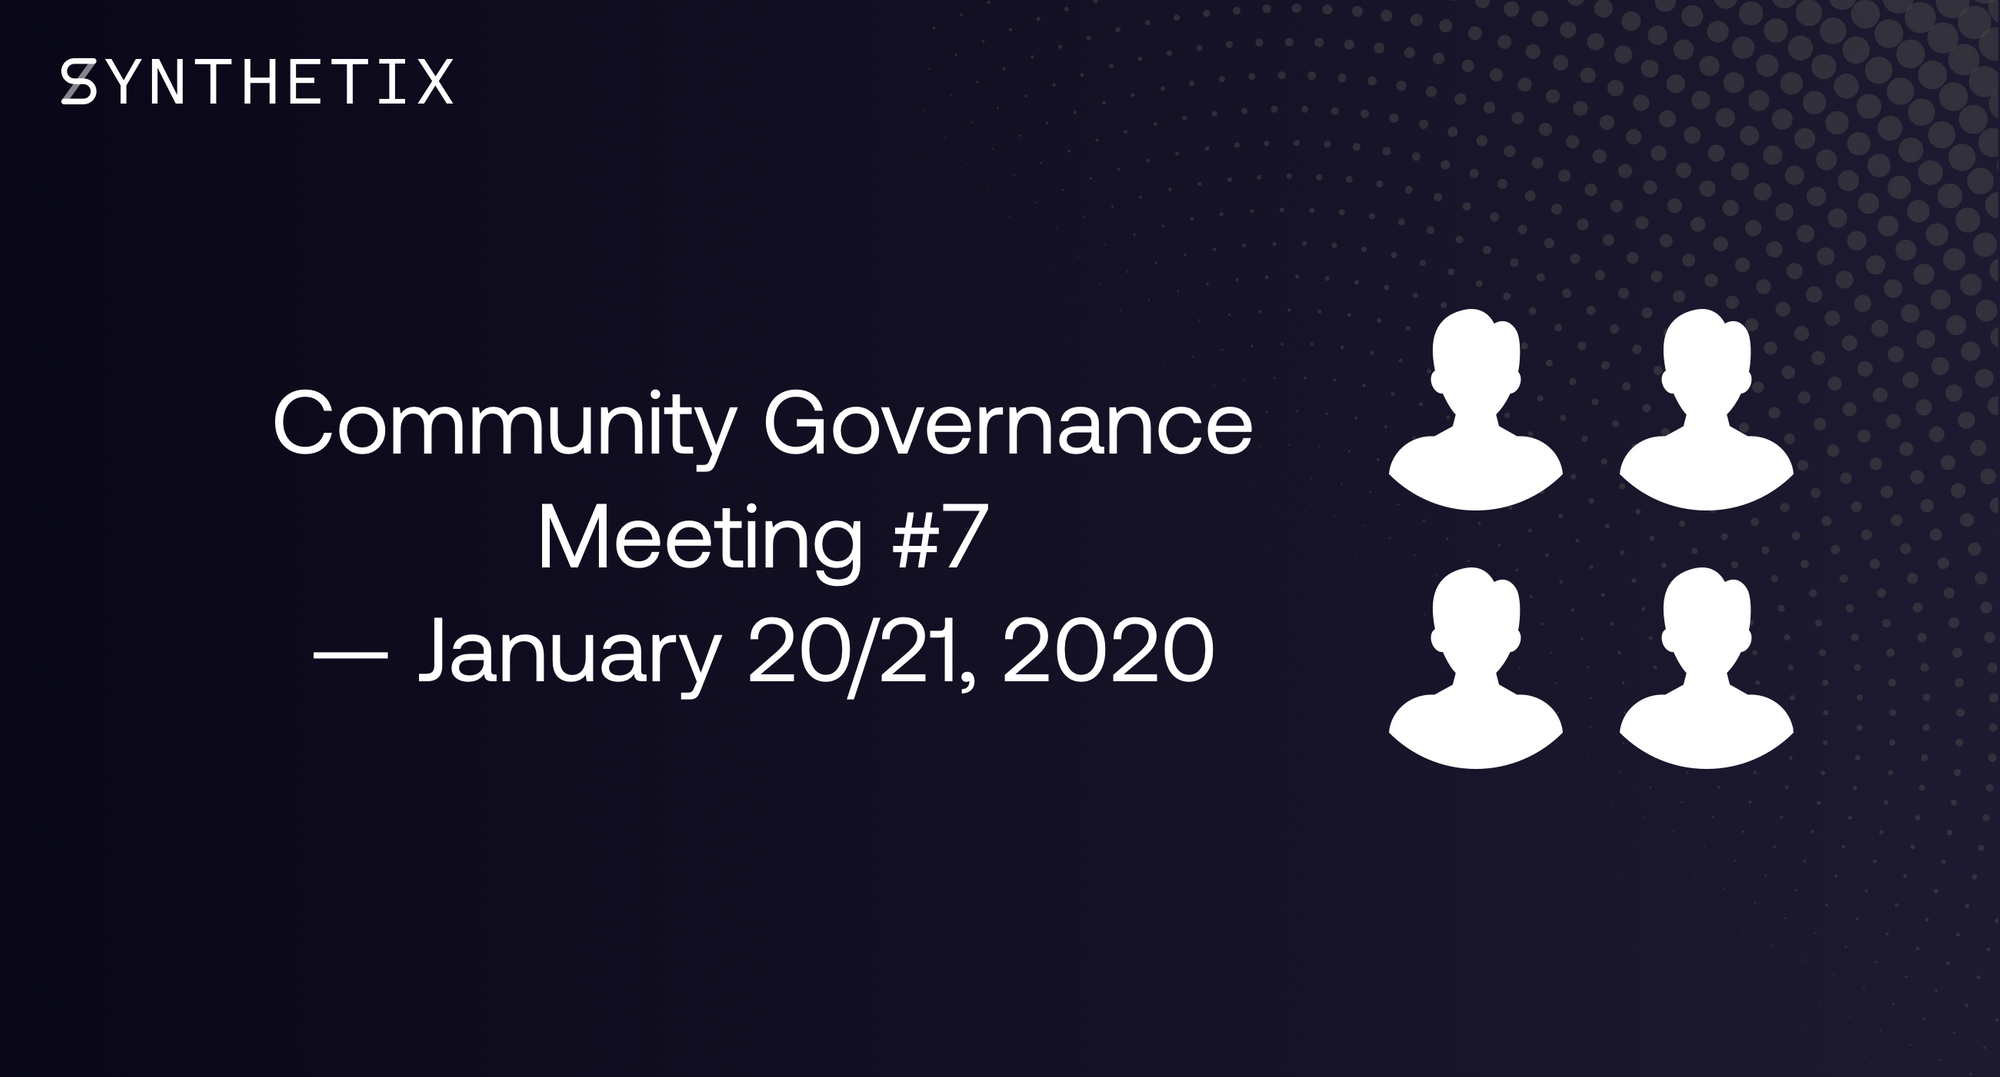 Join us on January 20/21 for the next community governance call!